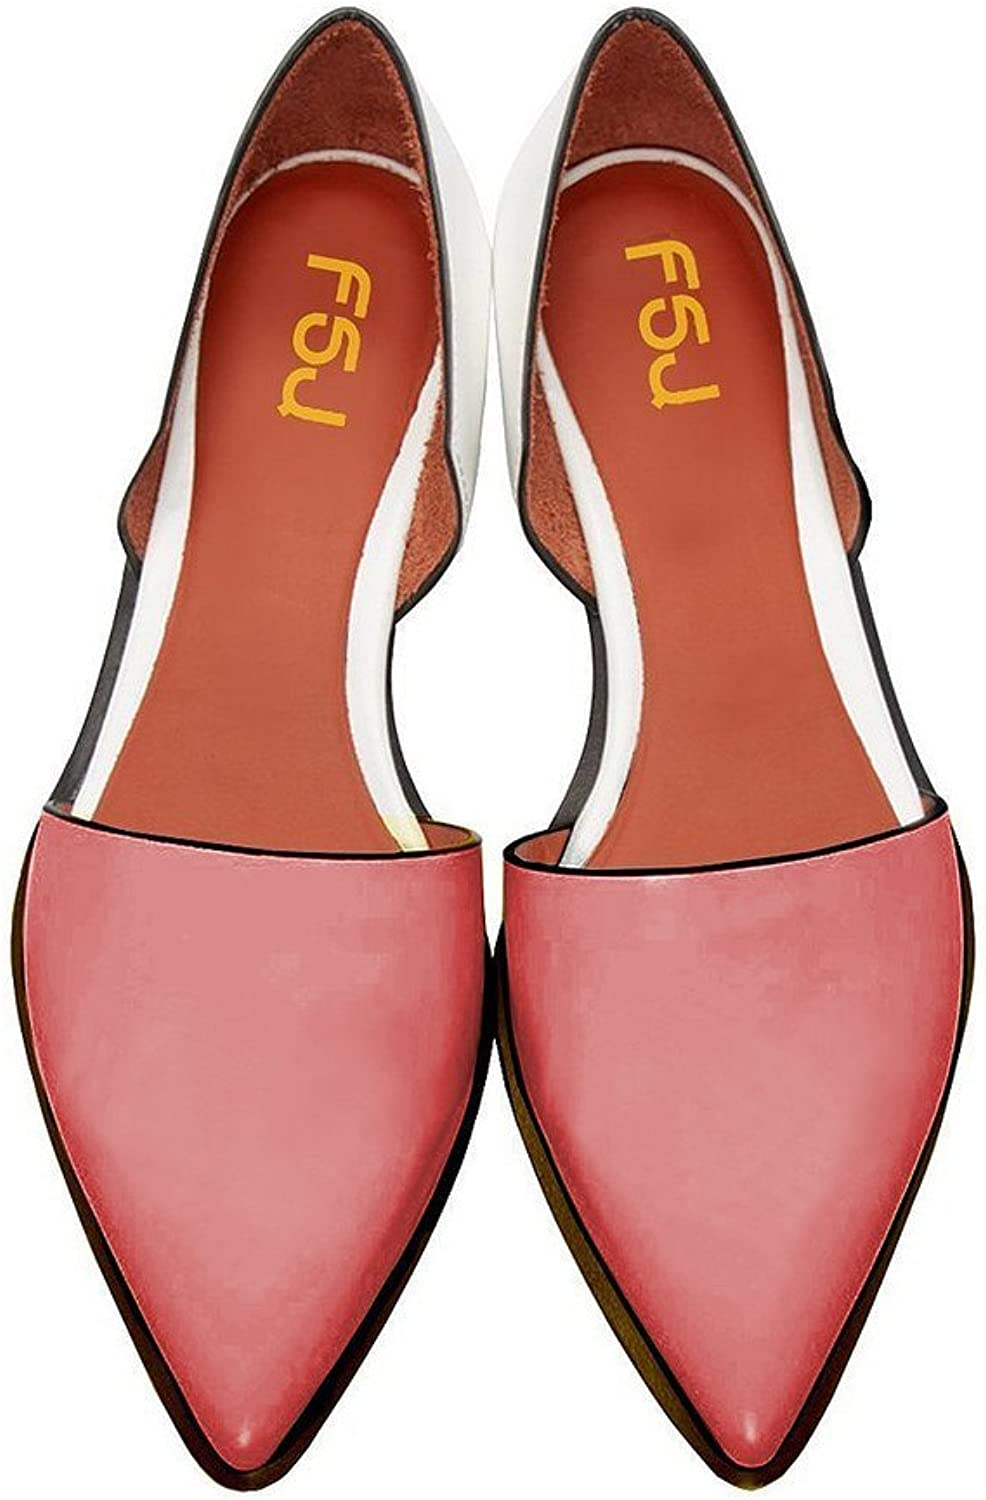 FSJ Fashion Pointed Toe shoes Patent Leather Slip-on Flats Easy-walking Plus Size